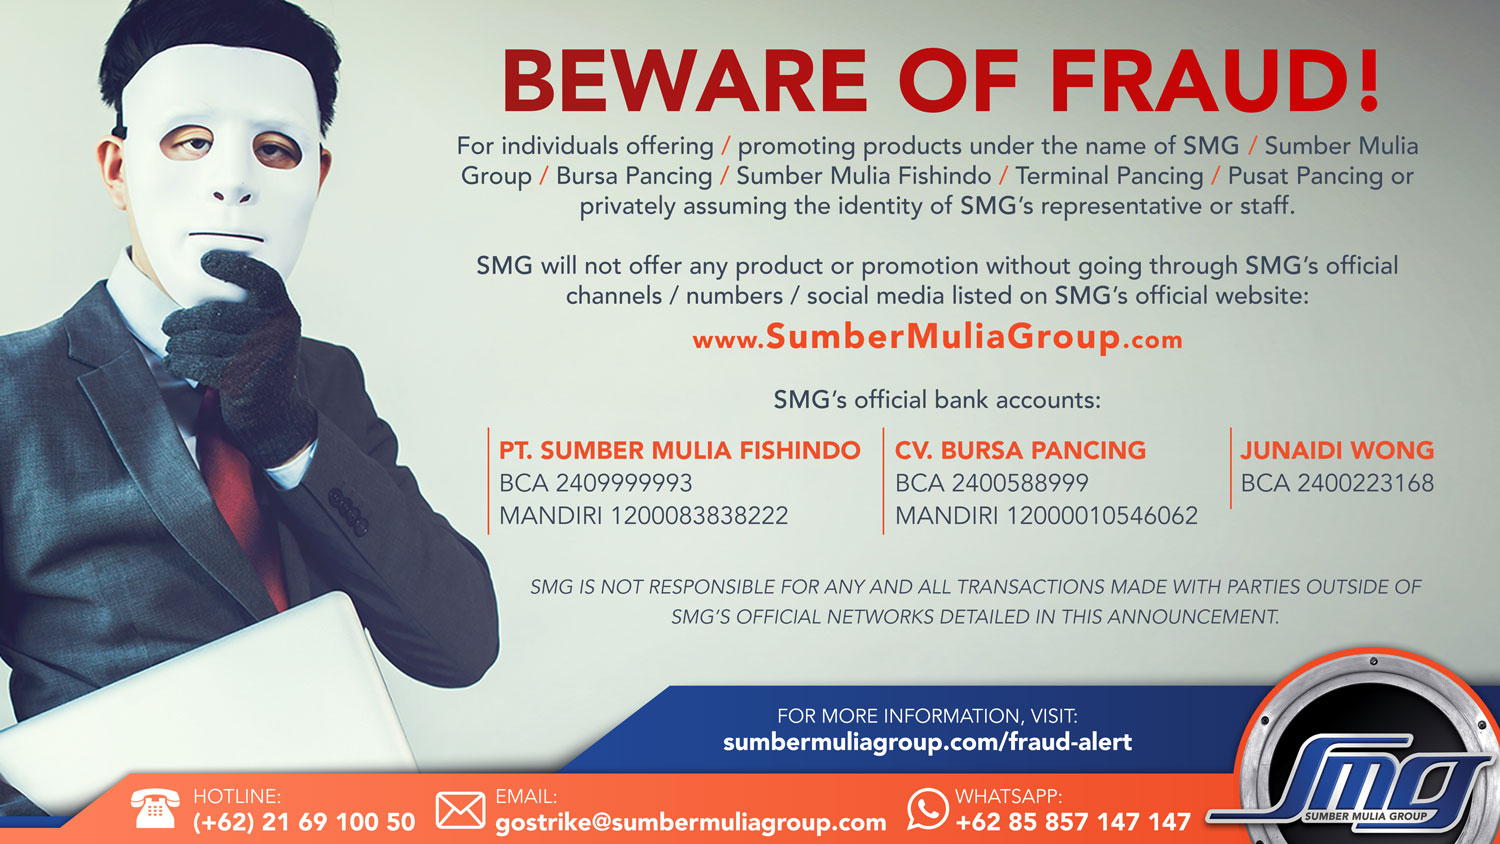 sumber-mulia-group-smg-news-fraud-alert